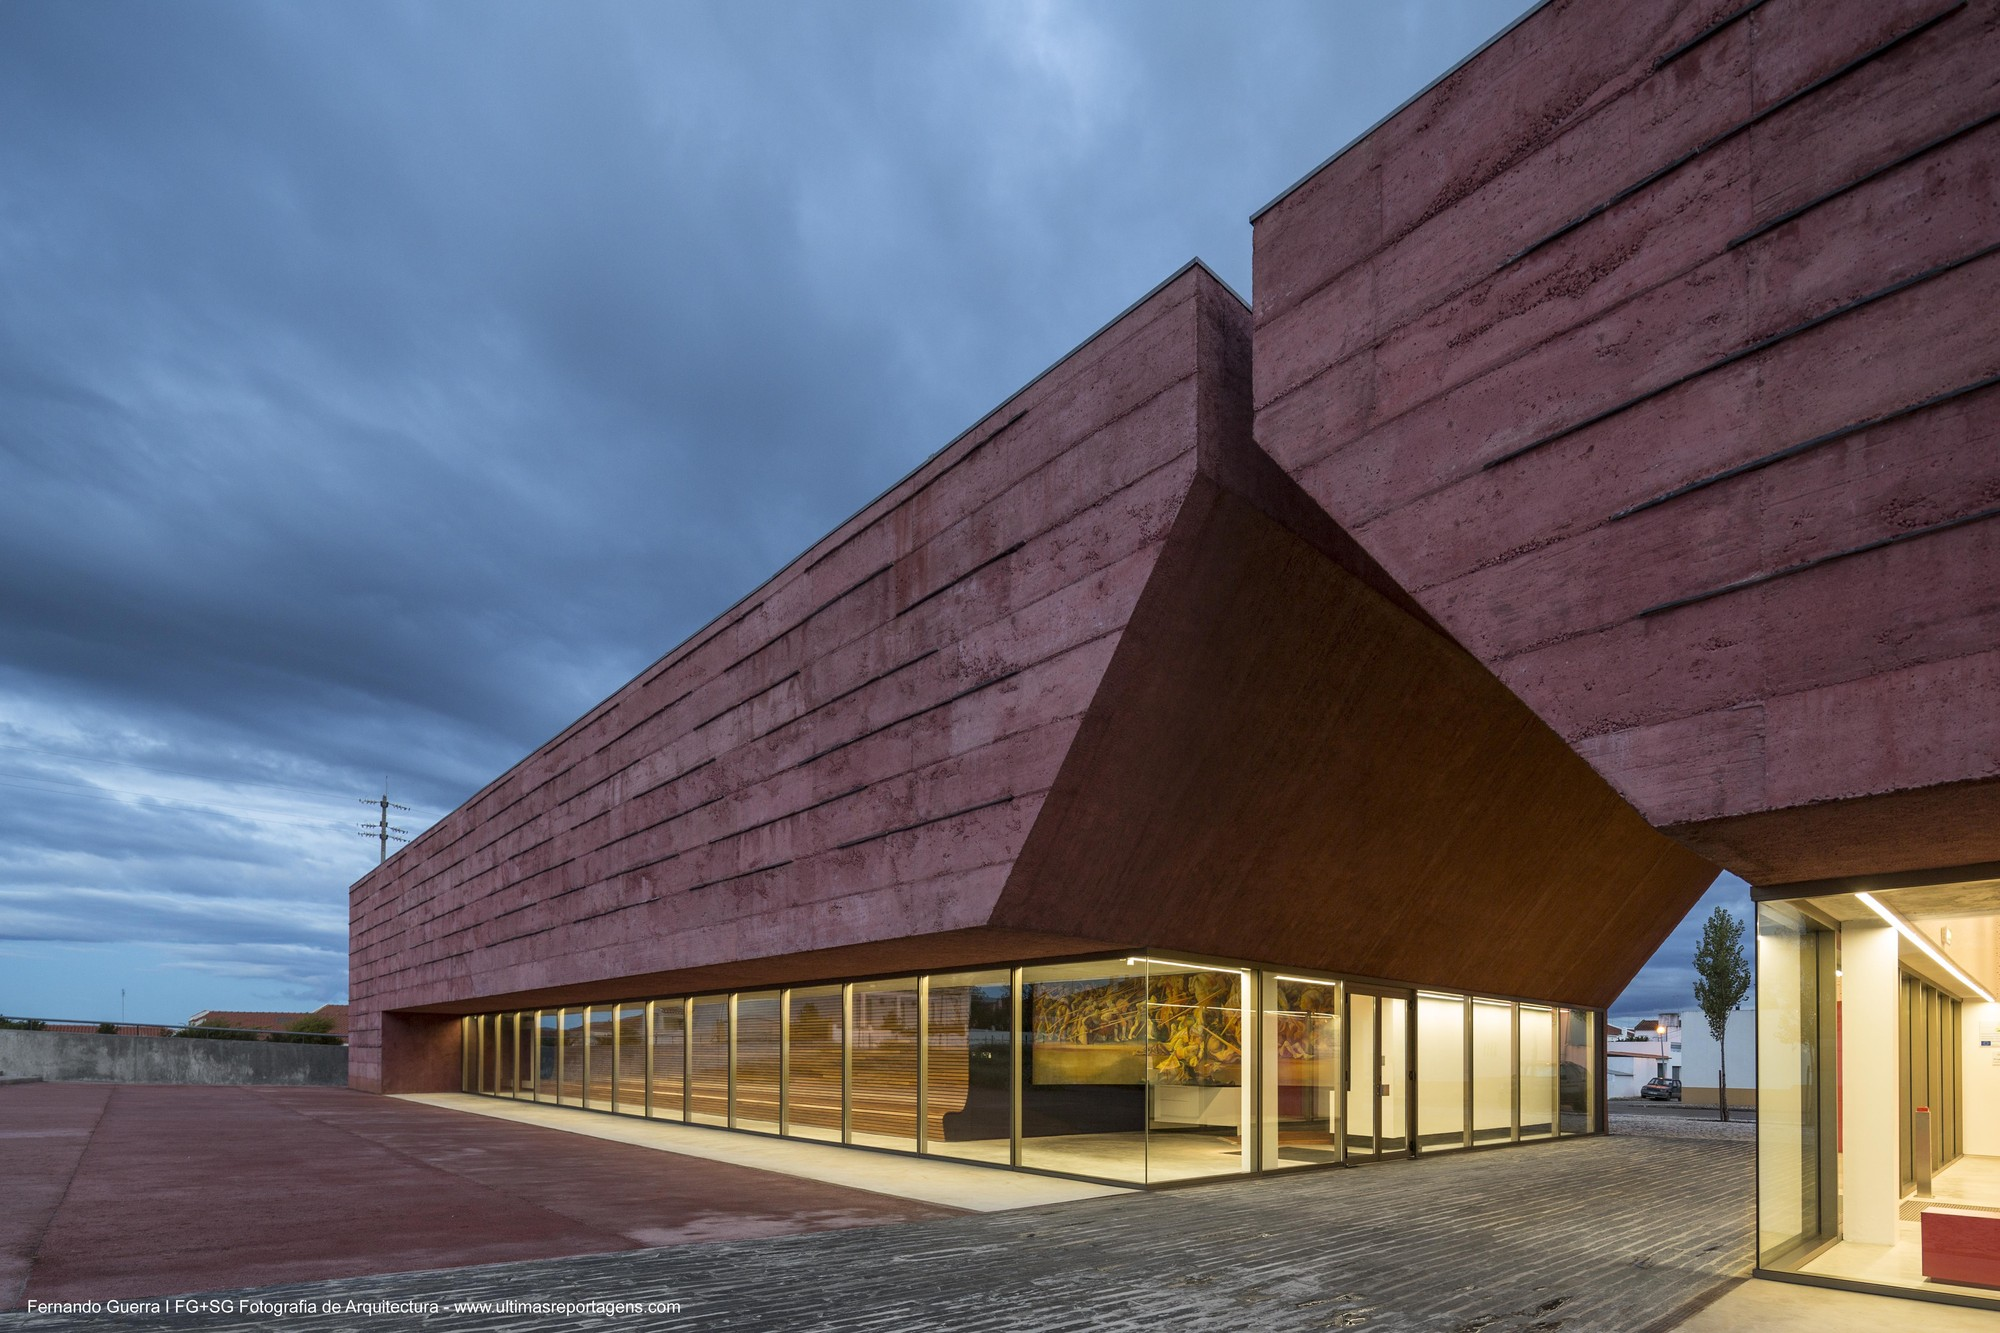 Center for Interpretation of The Battle of Atoleiros / Gonçalo Byrne Arquitectos + Oficina Ideias em Linha, © FG + SG